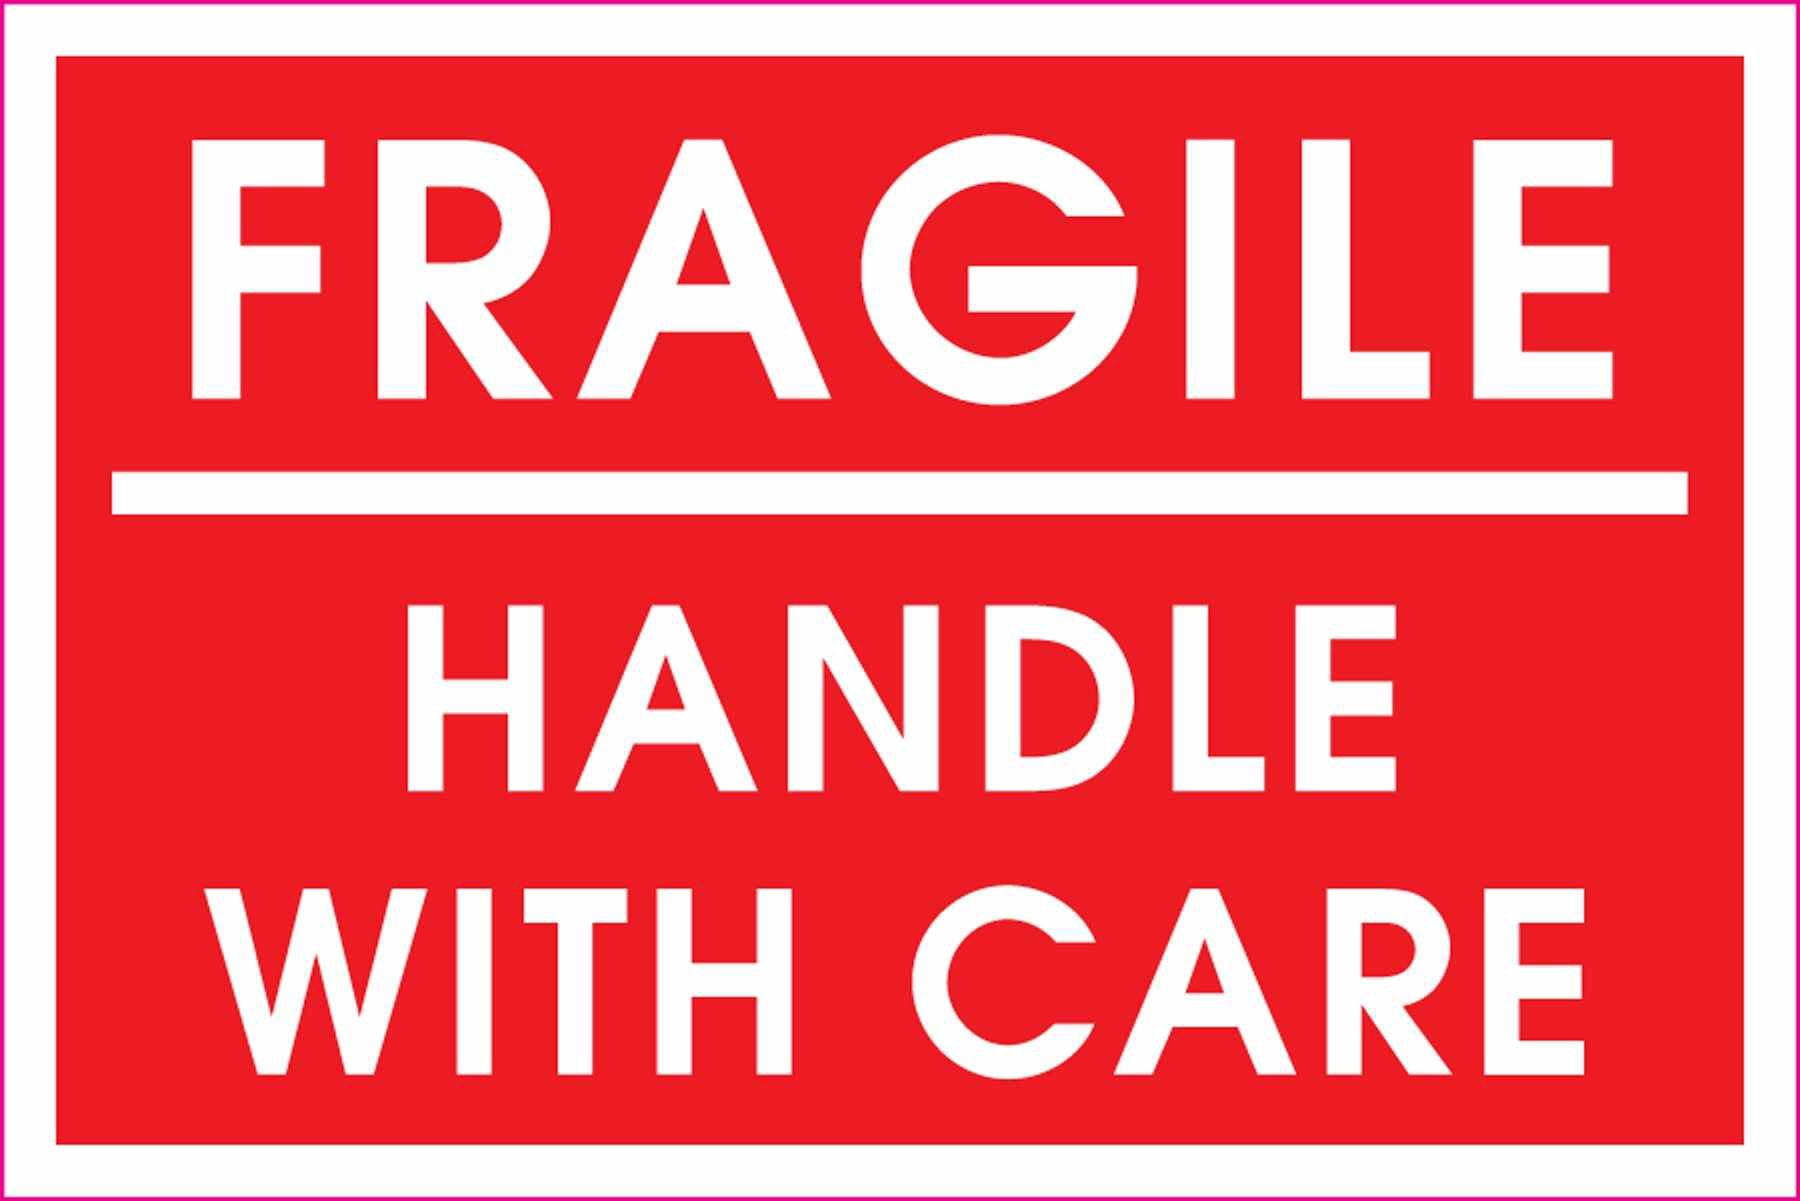 Fragile-Handle with care. – Thought Filled